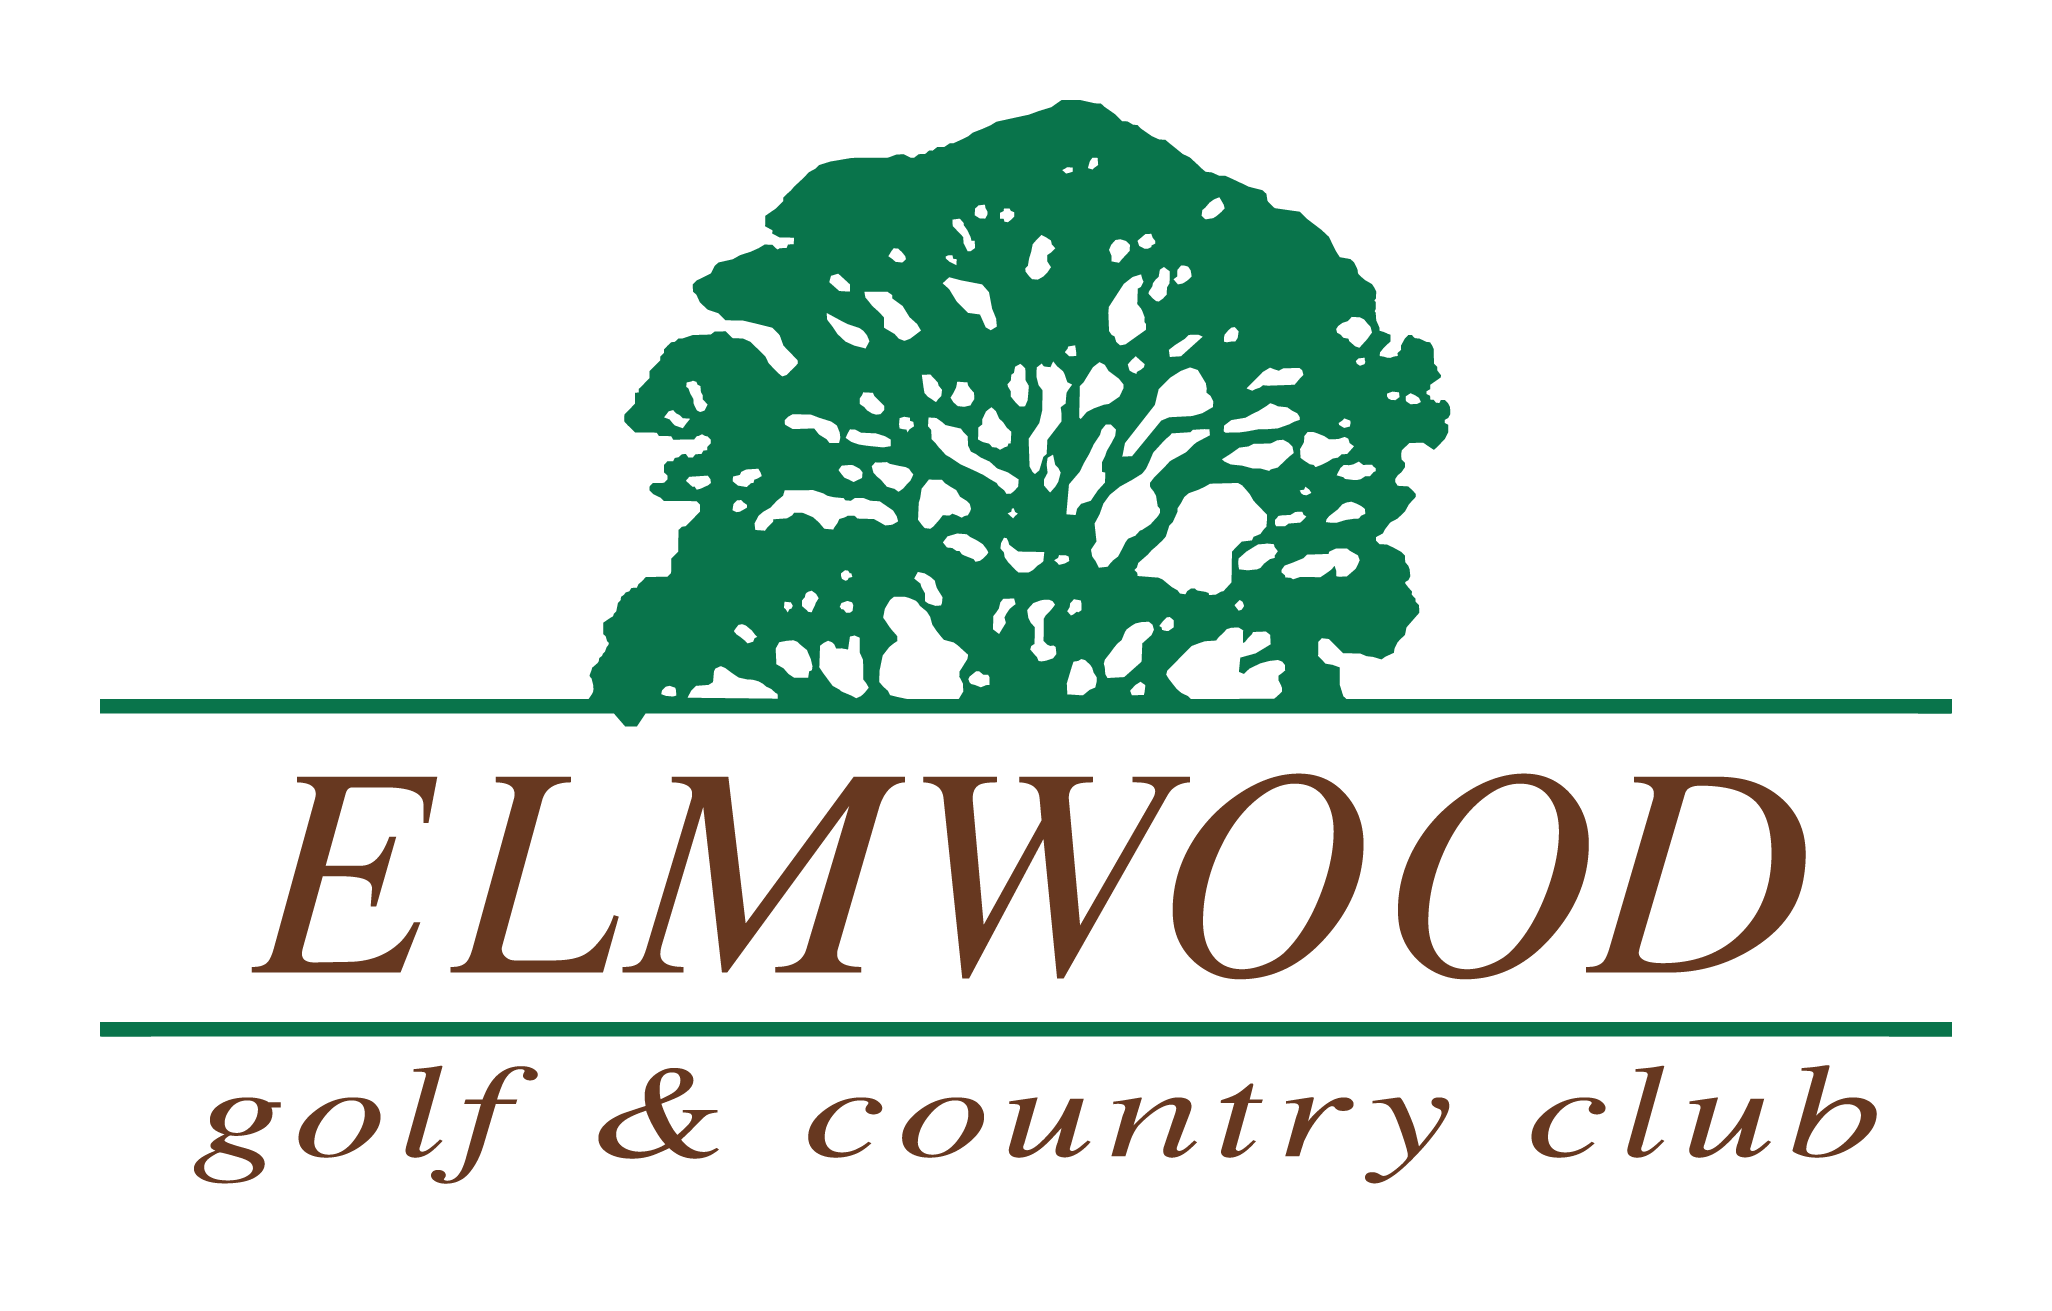 Elmwood Golf & Country